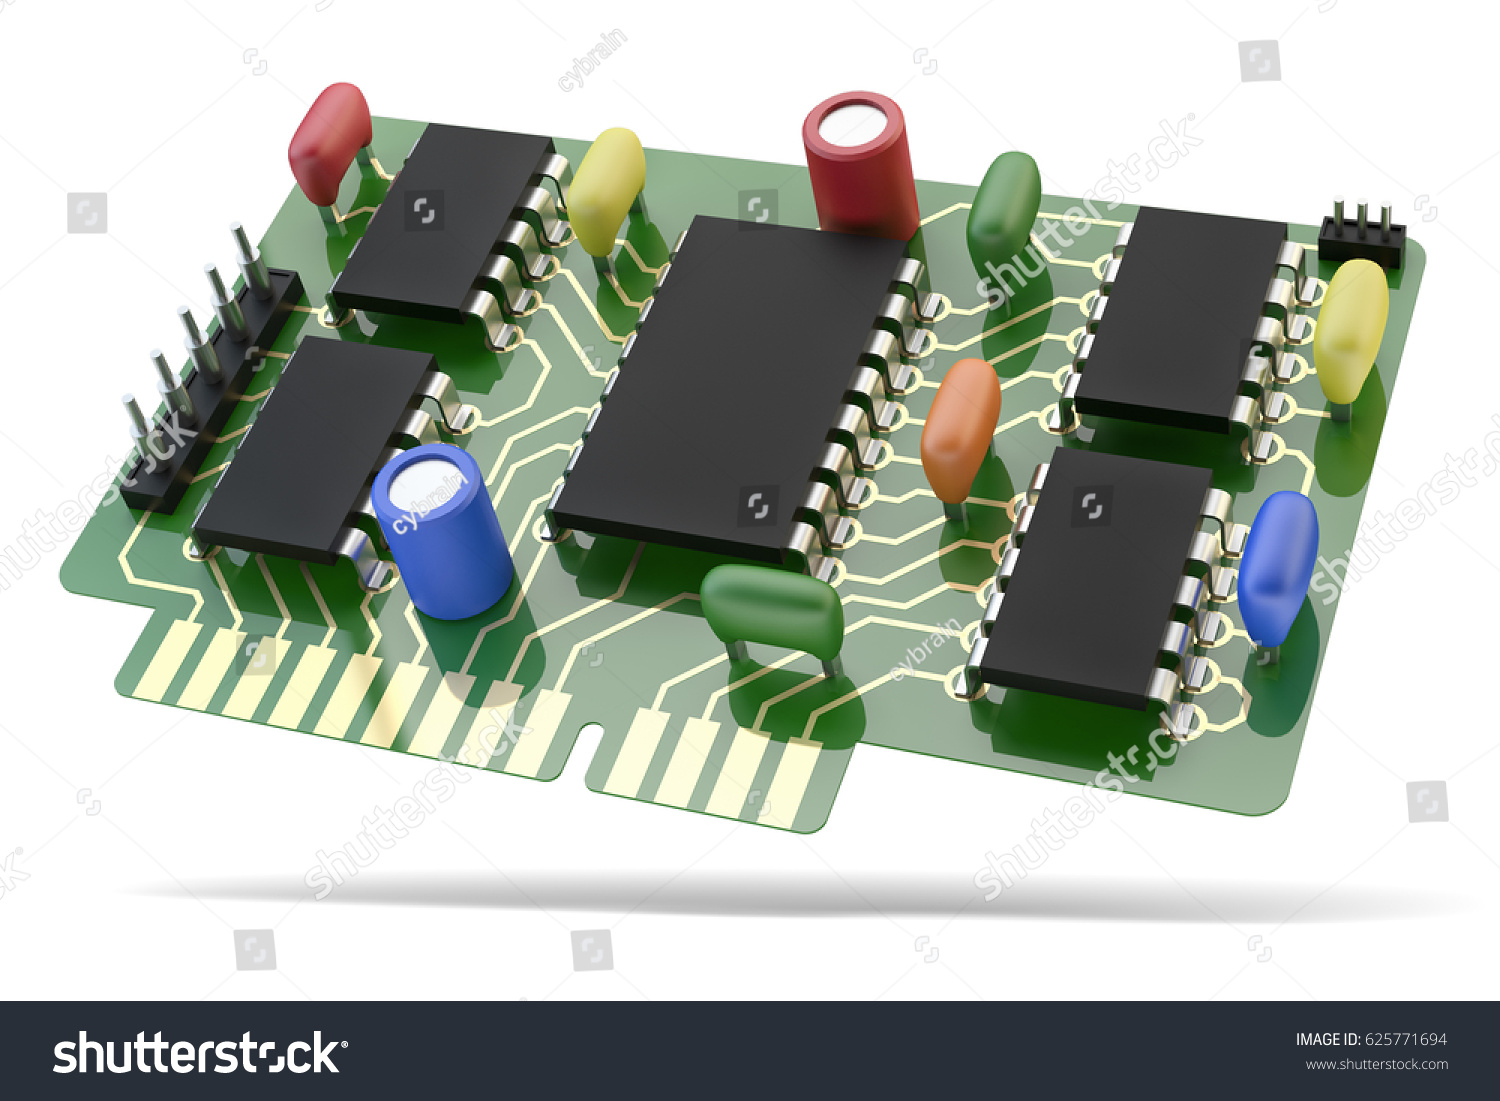 Printed Circuit Board Pcb Microchip Electronic Stock Illustration Of A Green With And Components Electrical Device Icon Isolated